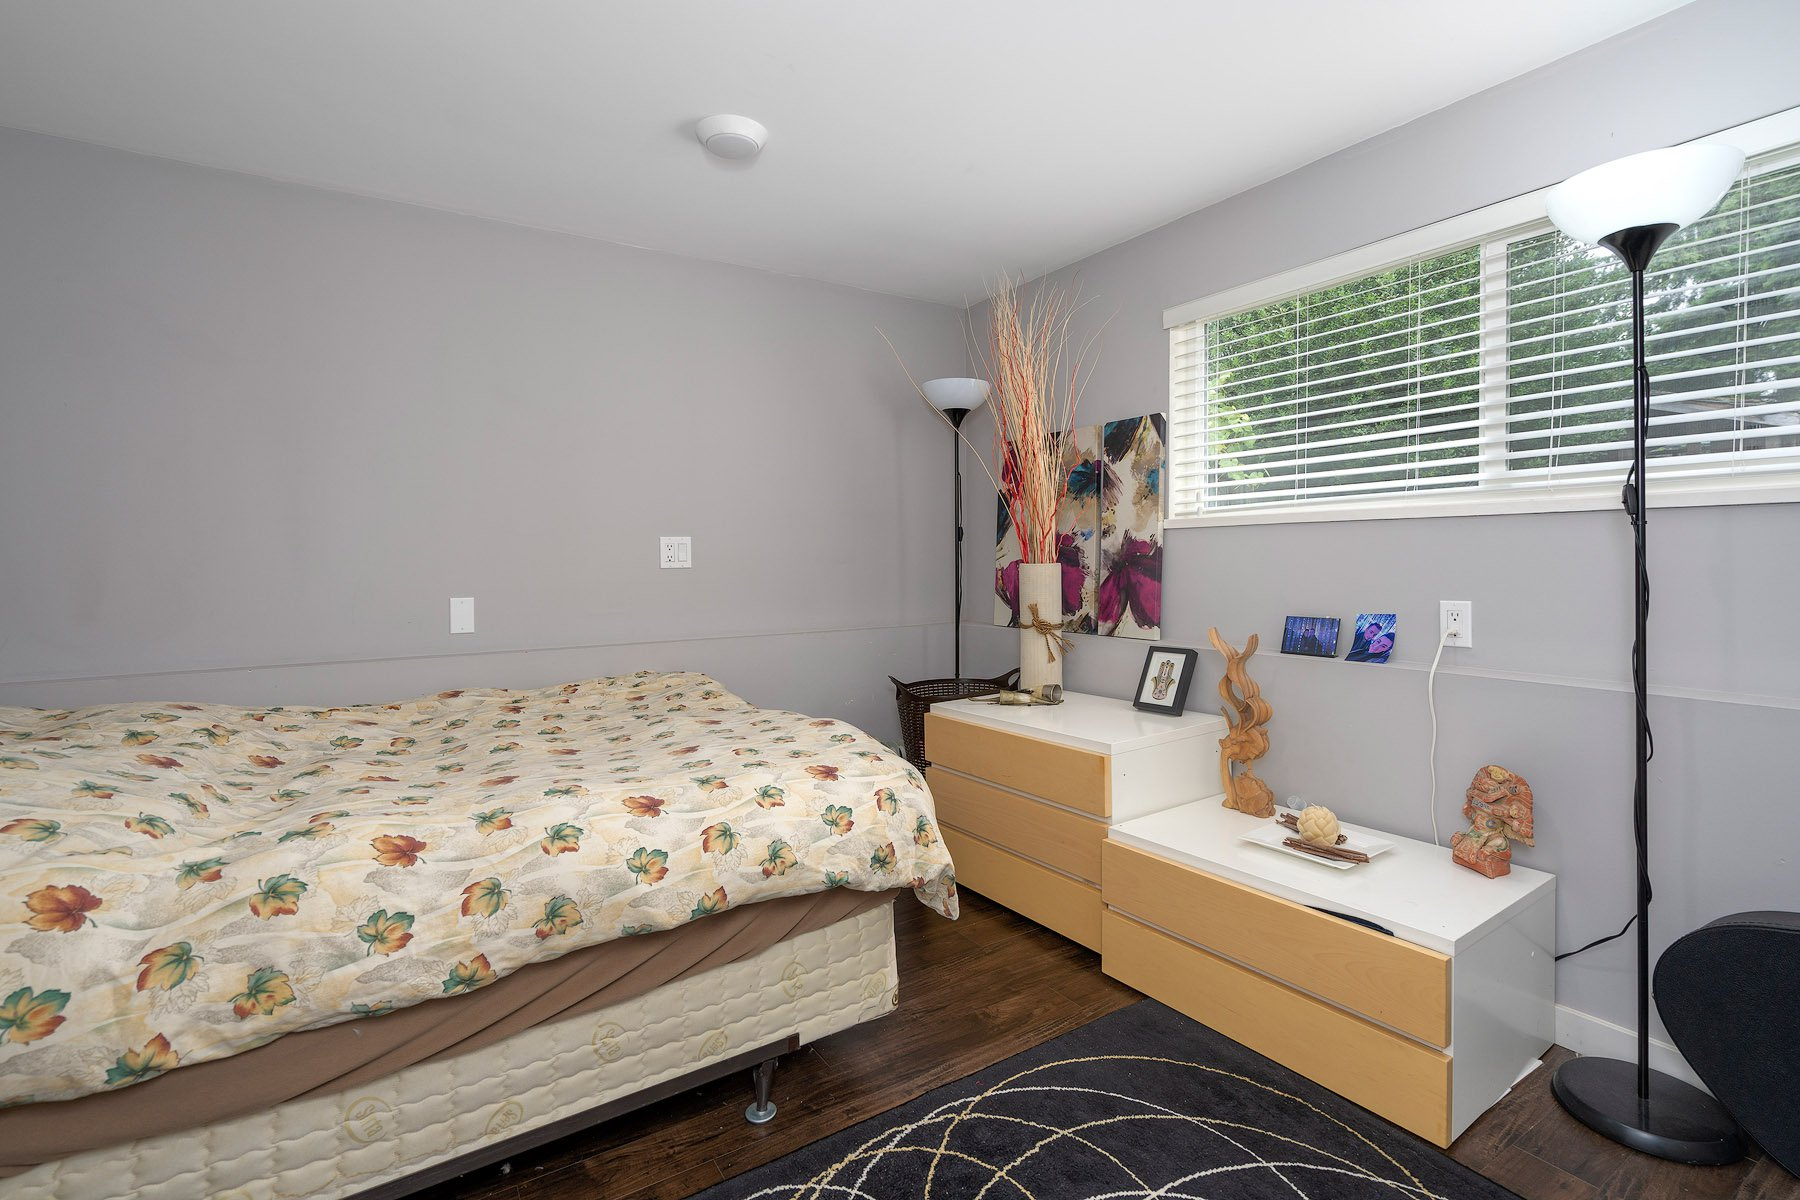 Photo 22: Photos: 423 MONTGOMERY Street in Coquitlam: Central Coquitlam House for sale : MLS®# R2380693